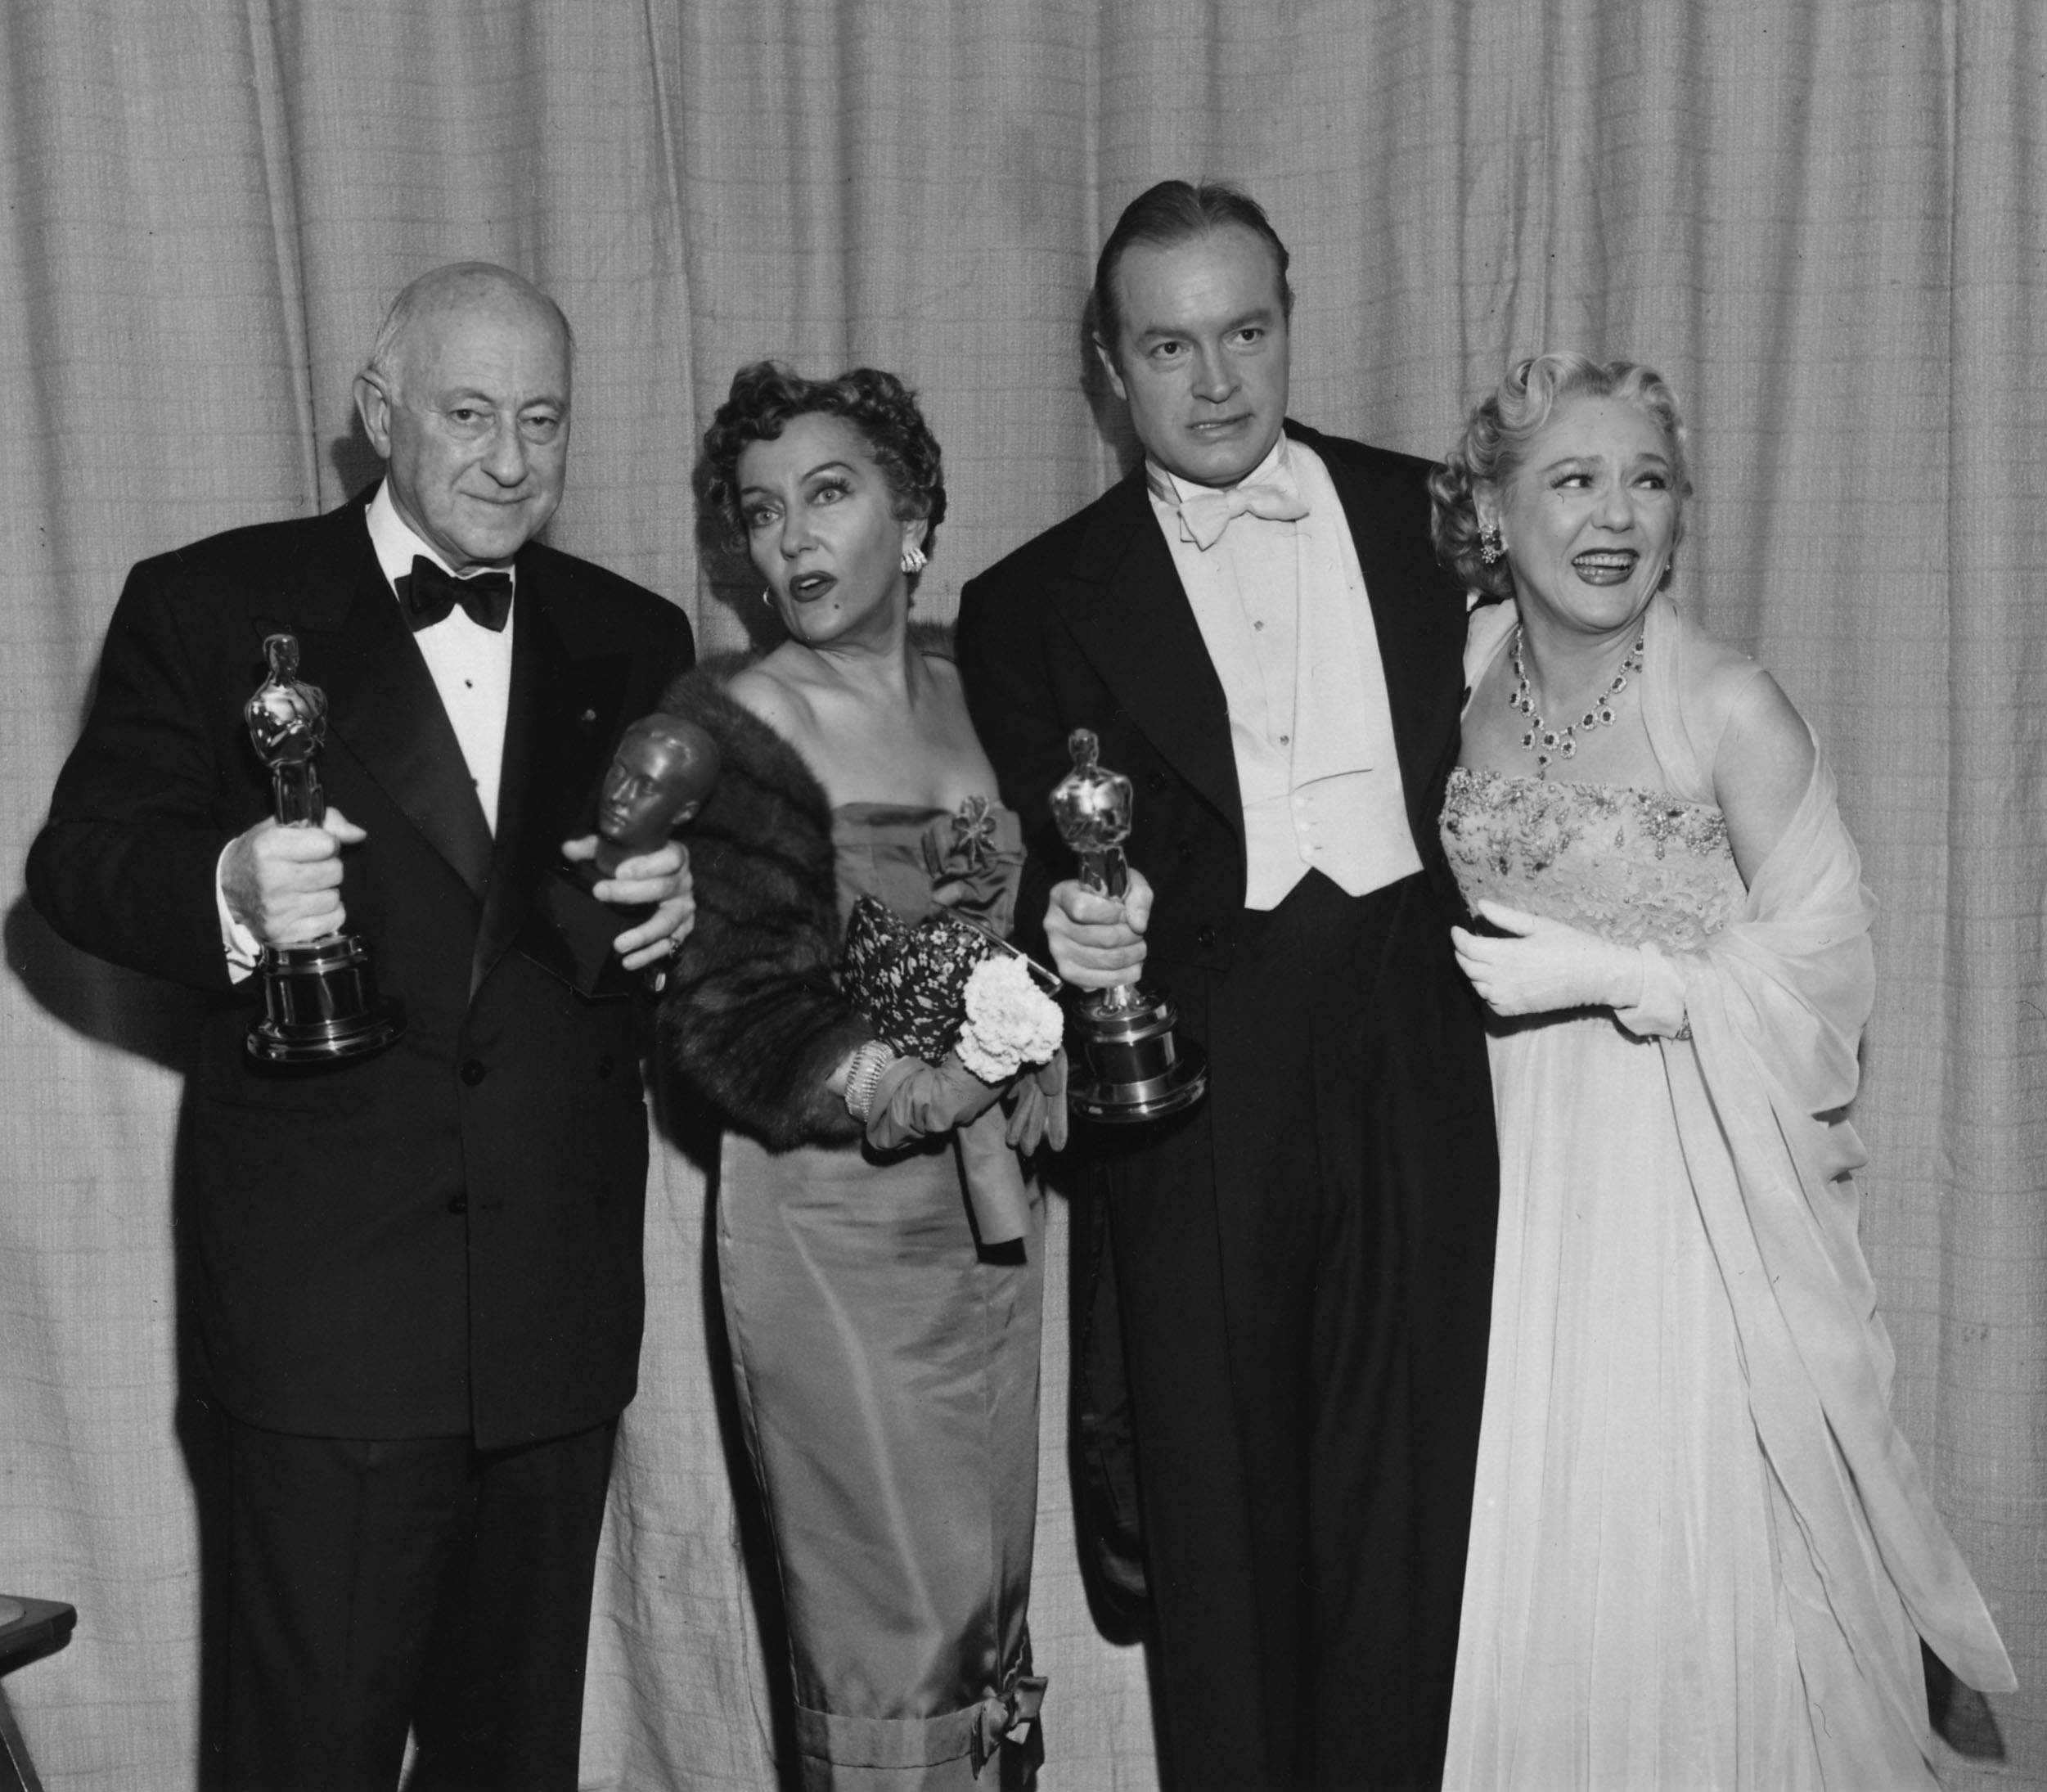 Cecil B. DeMille, Gloria Swanson, Bob Hope, and Mary Pickford